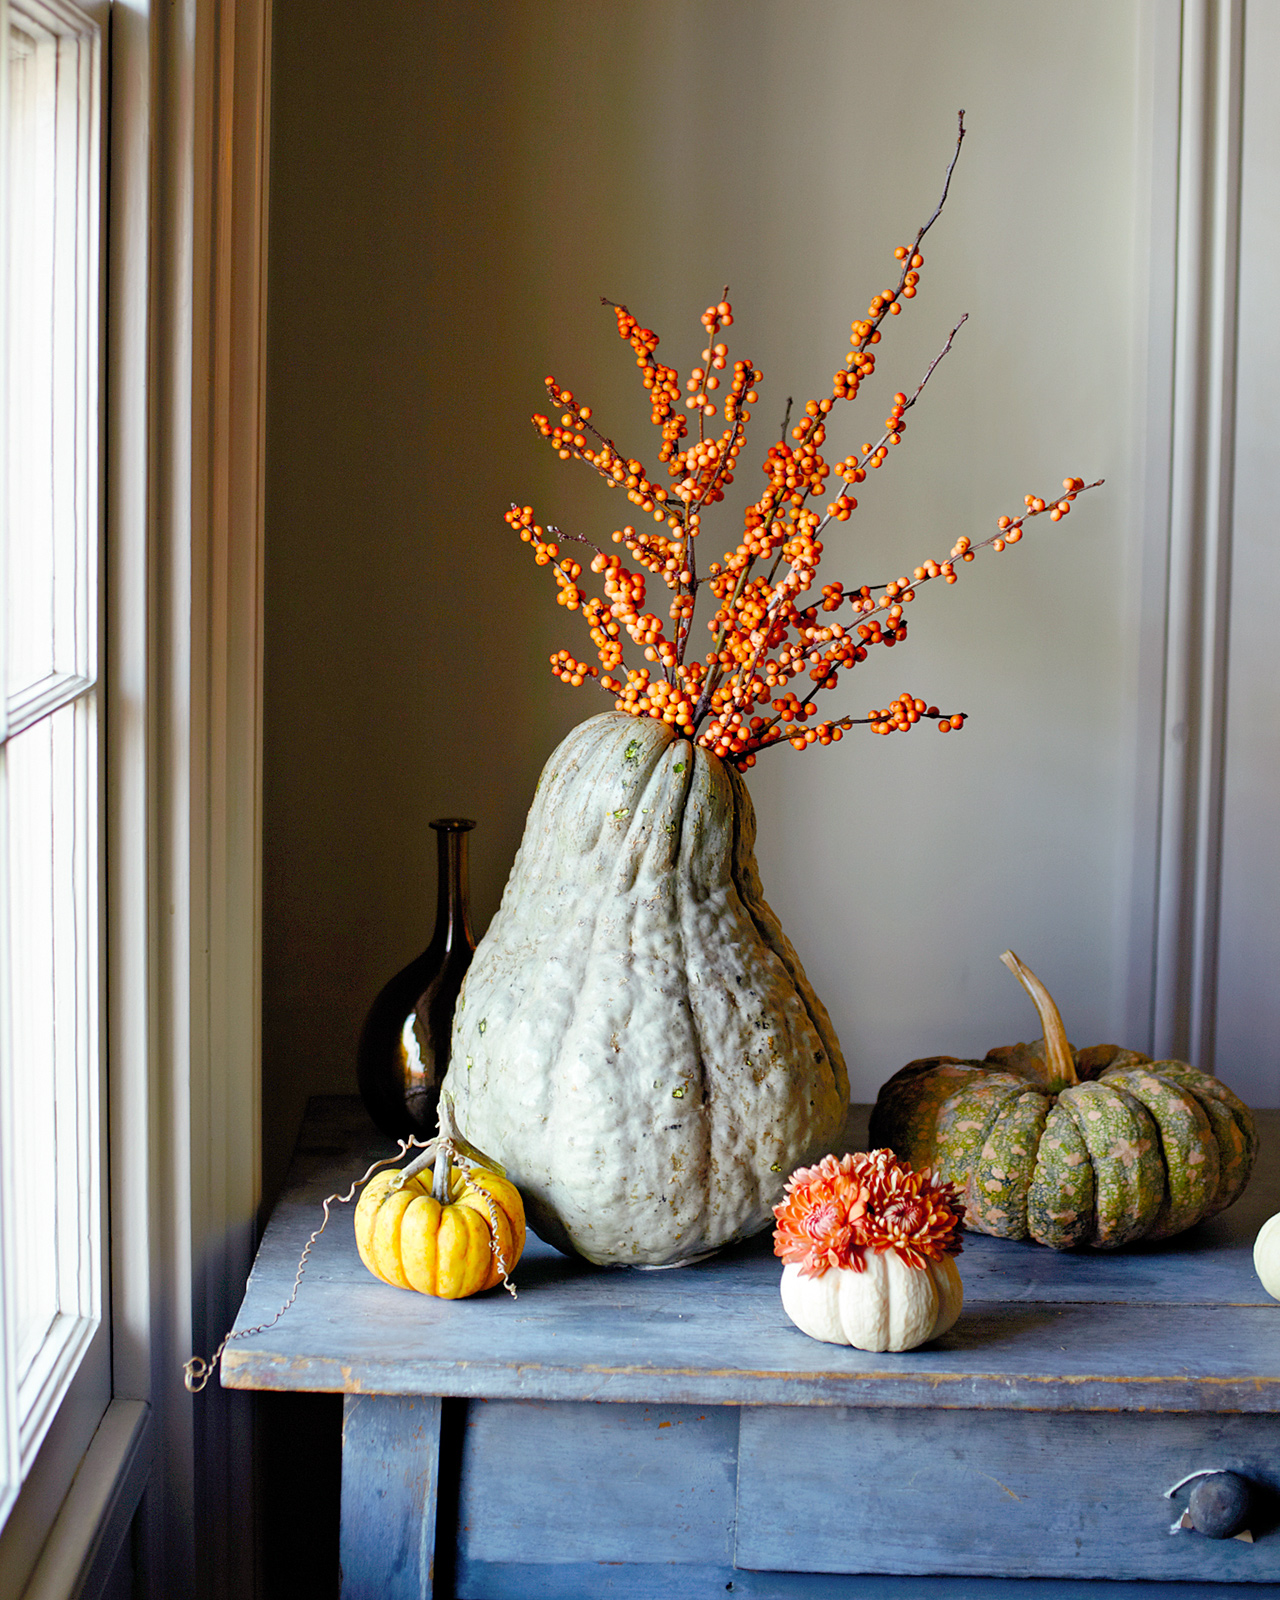 squash pumpkin fall floral arrangement near window